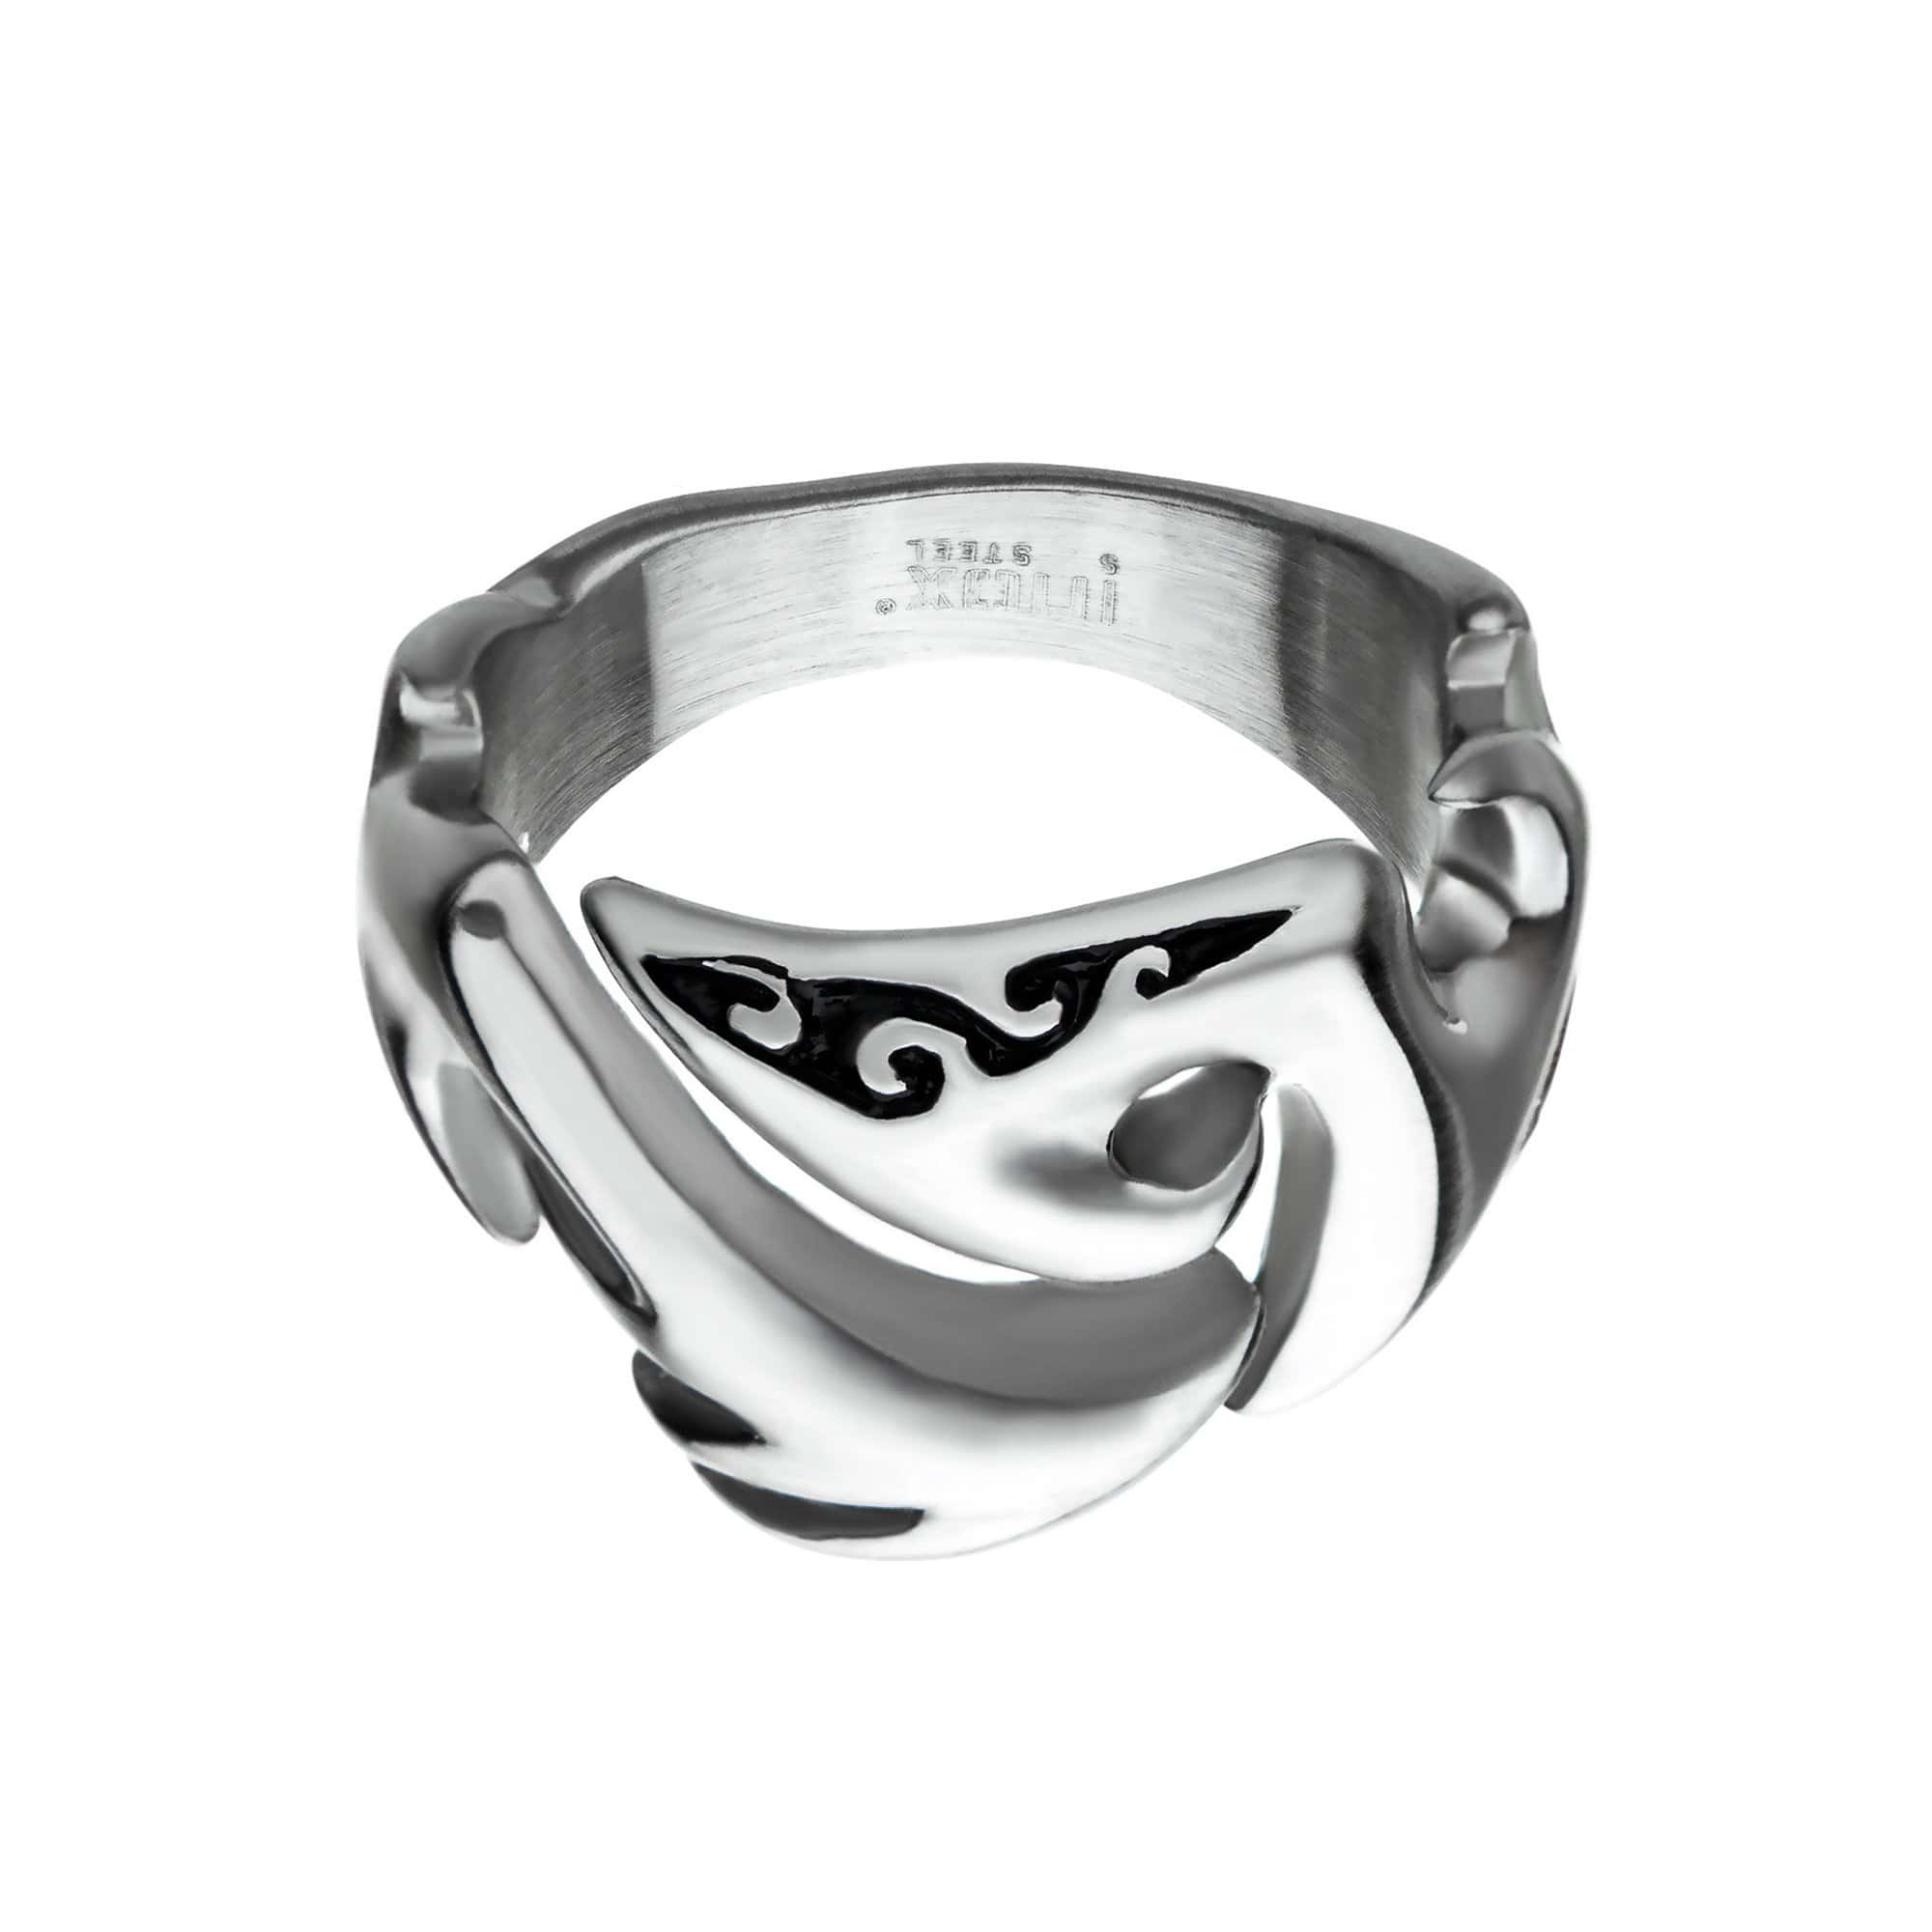 Silver Stainless Steel Surfer's Wave Ring